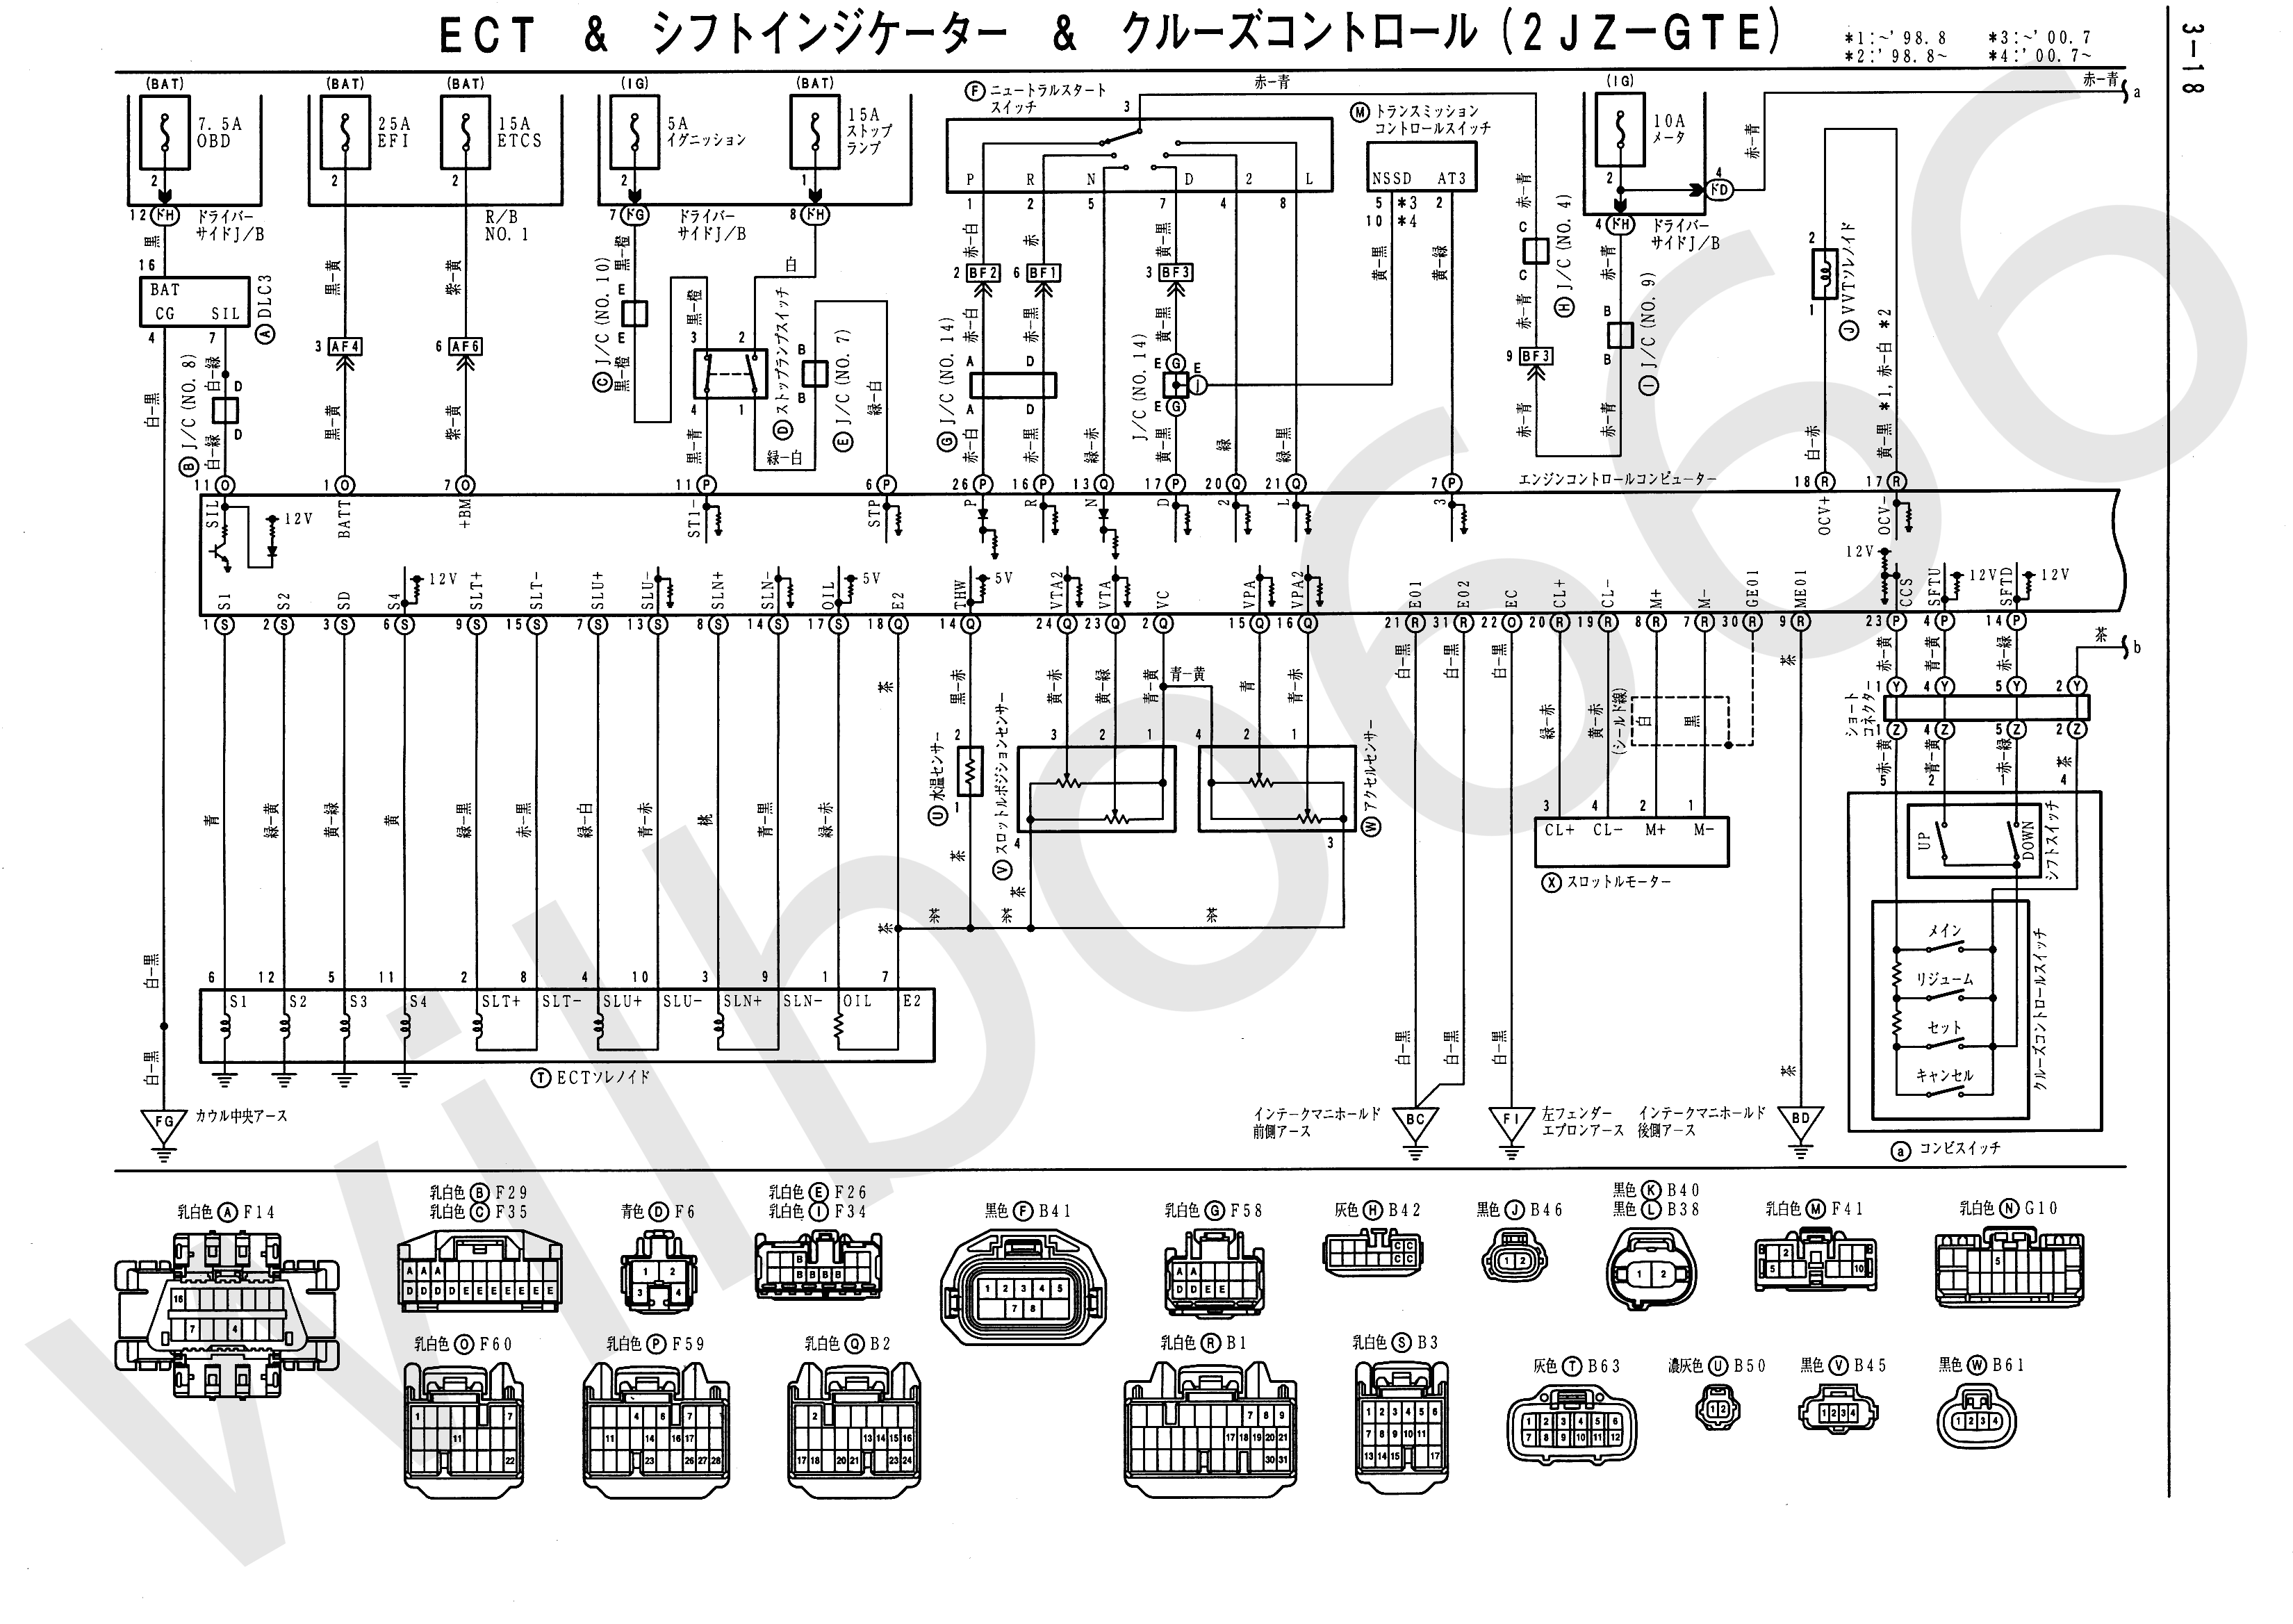 Wilbo666 2jz Gte Vvti Jzs161 Aristo Engine Wiring 2001 Nissan Maxima Amplifier Wire Diagram Toyota Diagrams